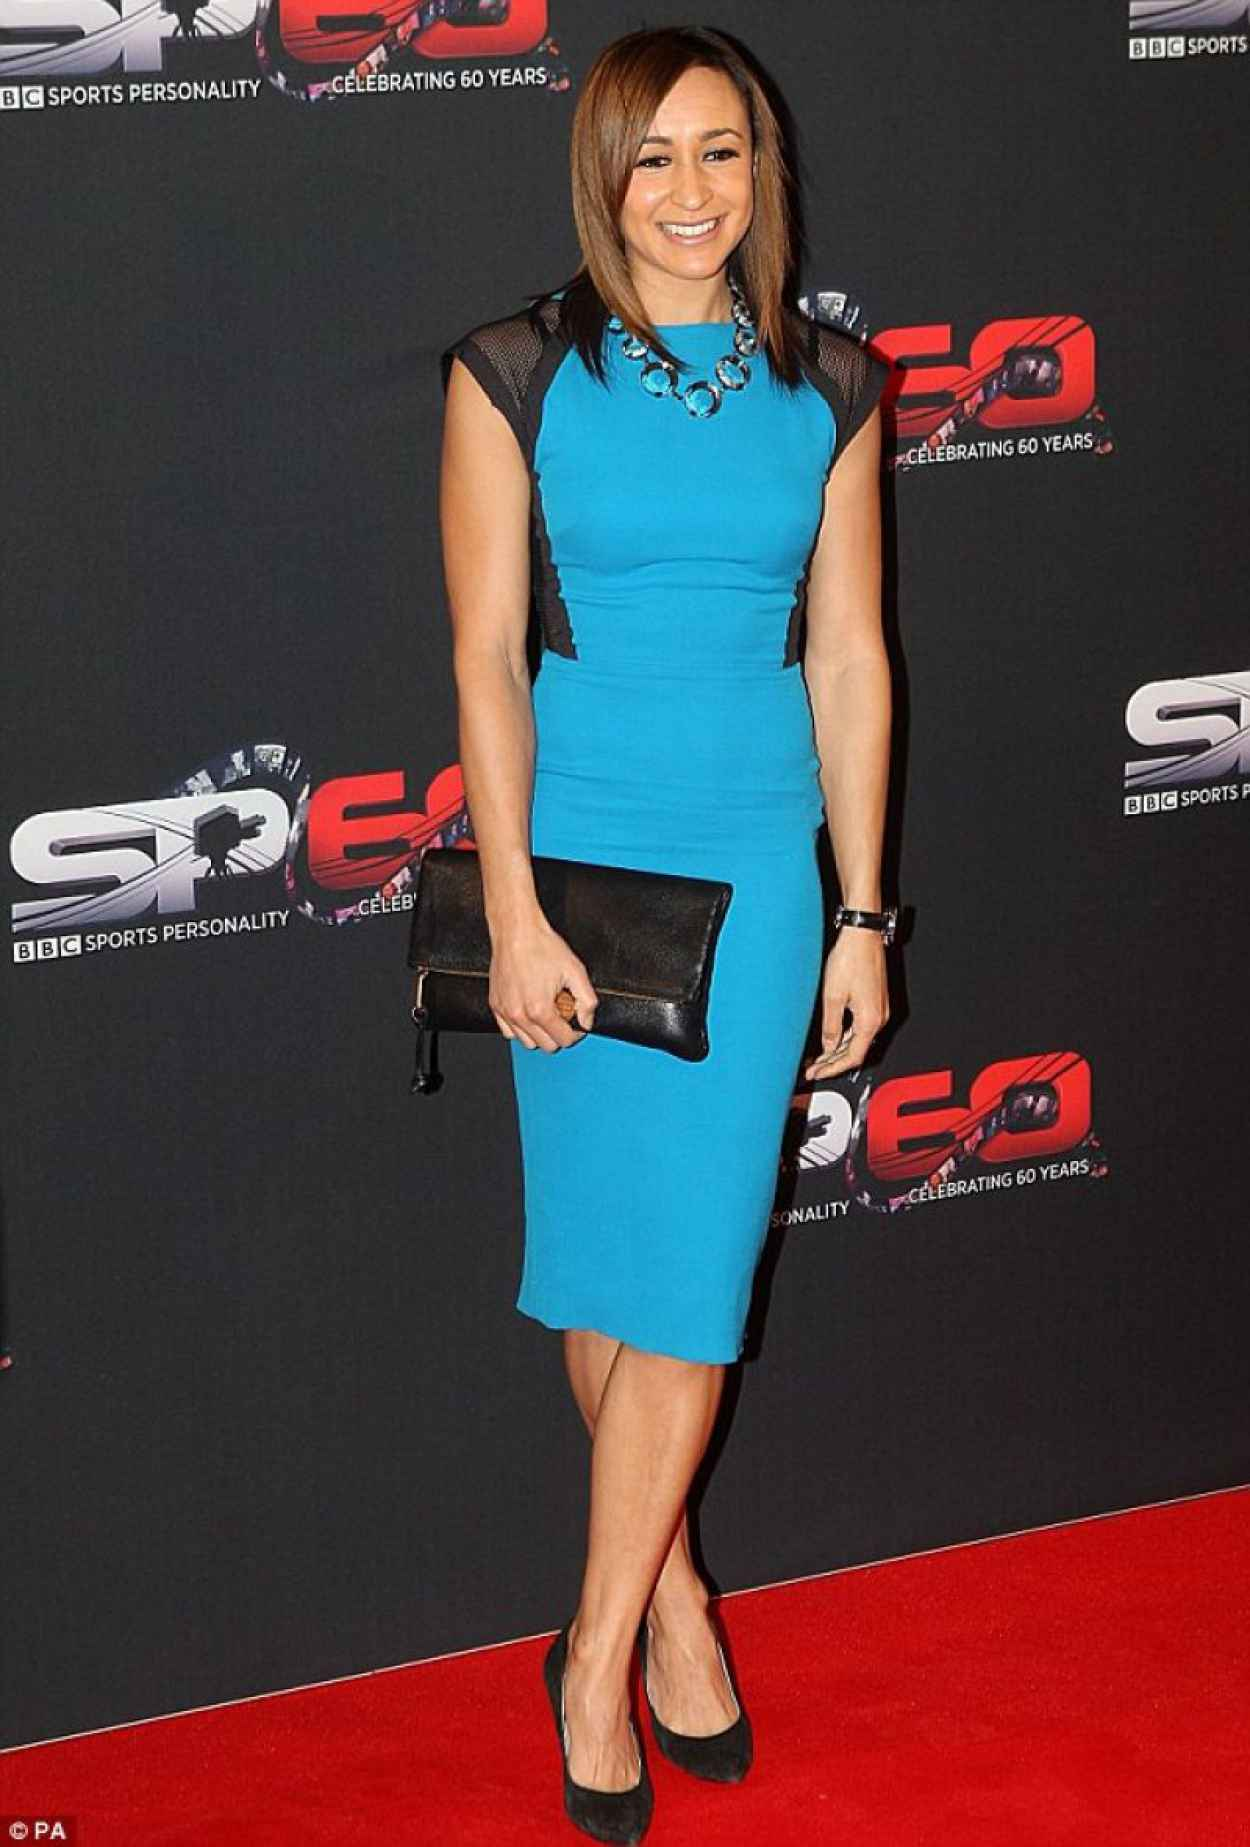 Jessica Ennis Red Carpet Photos - BBC Sports Personality of the Year Awards - Leeds Decemner 2015-1